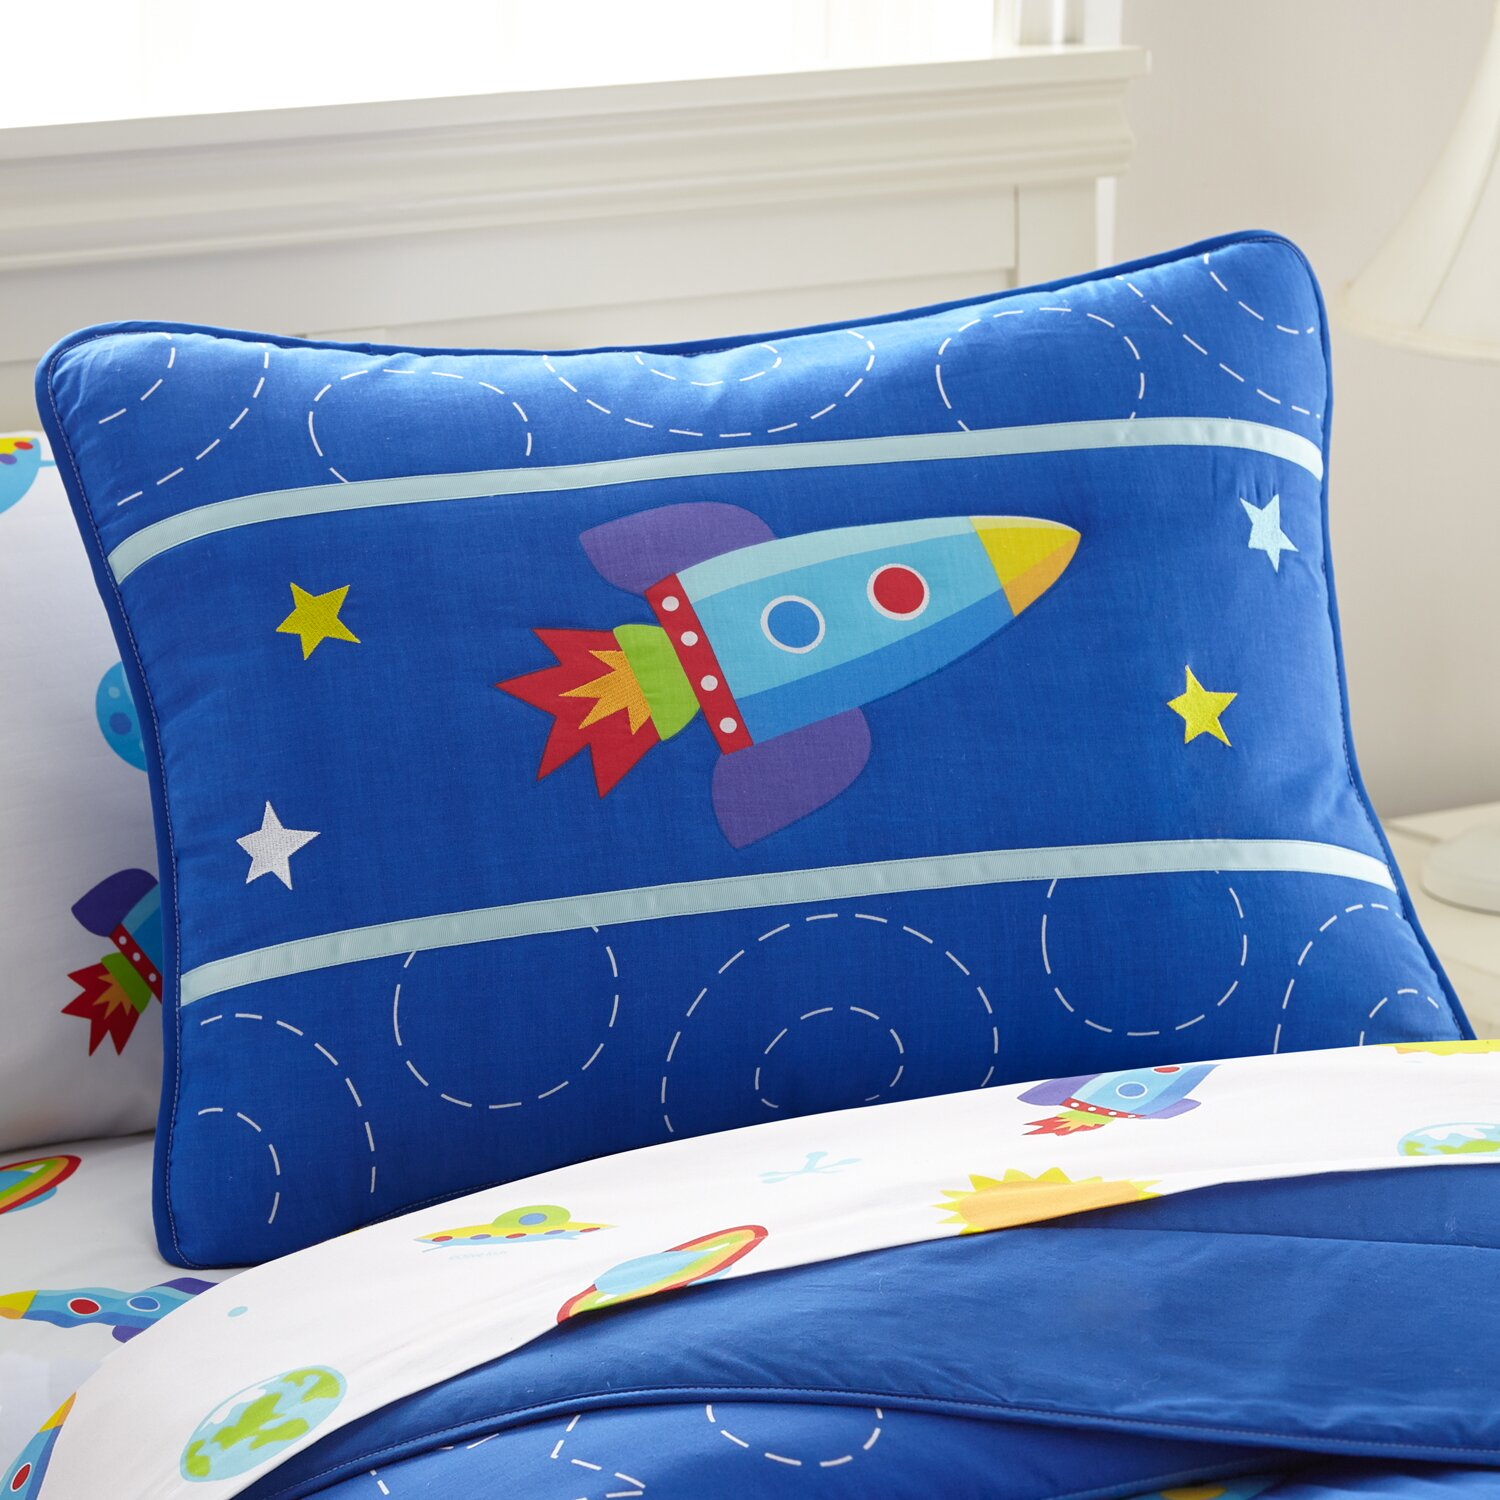 Our NEW Out of This World upgraded children's planets bedding is % cotton percale. Our kids comforter has a galaxy of planets, rocketships and comets against a swirly space background. The reverse is a starfield on blue.